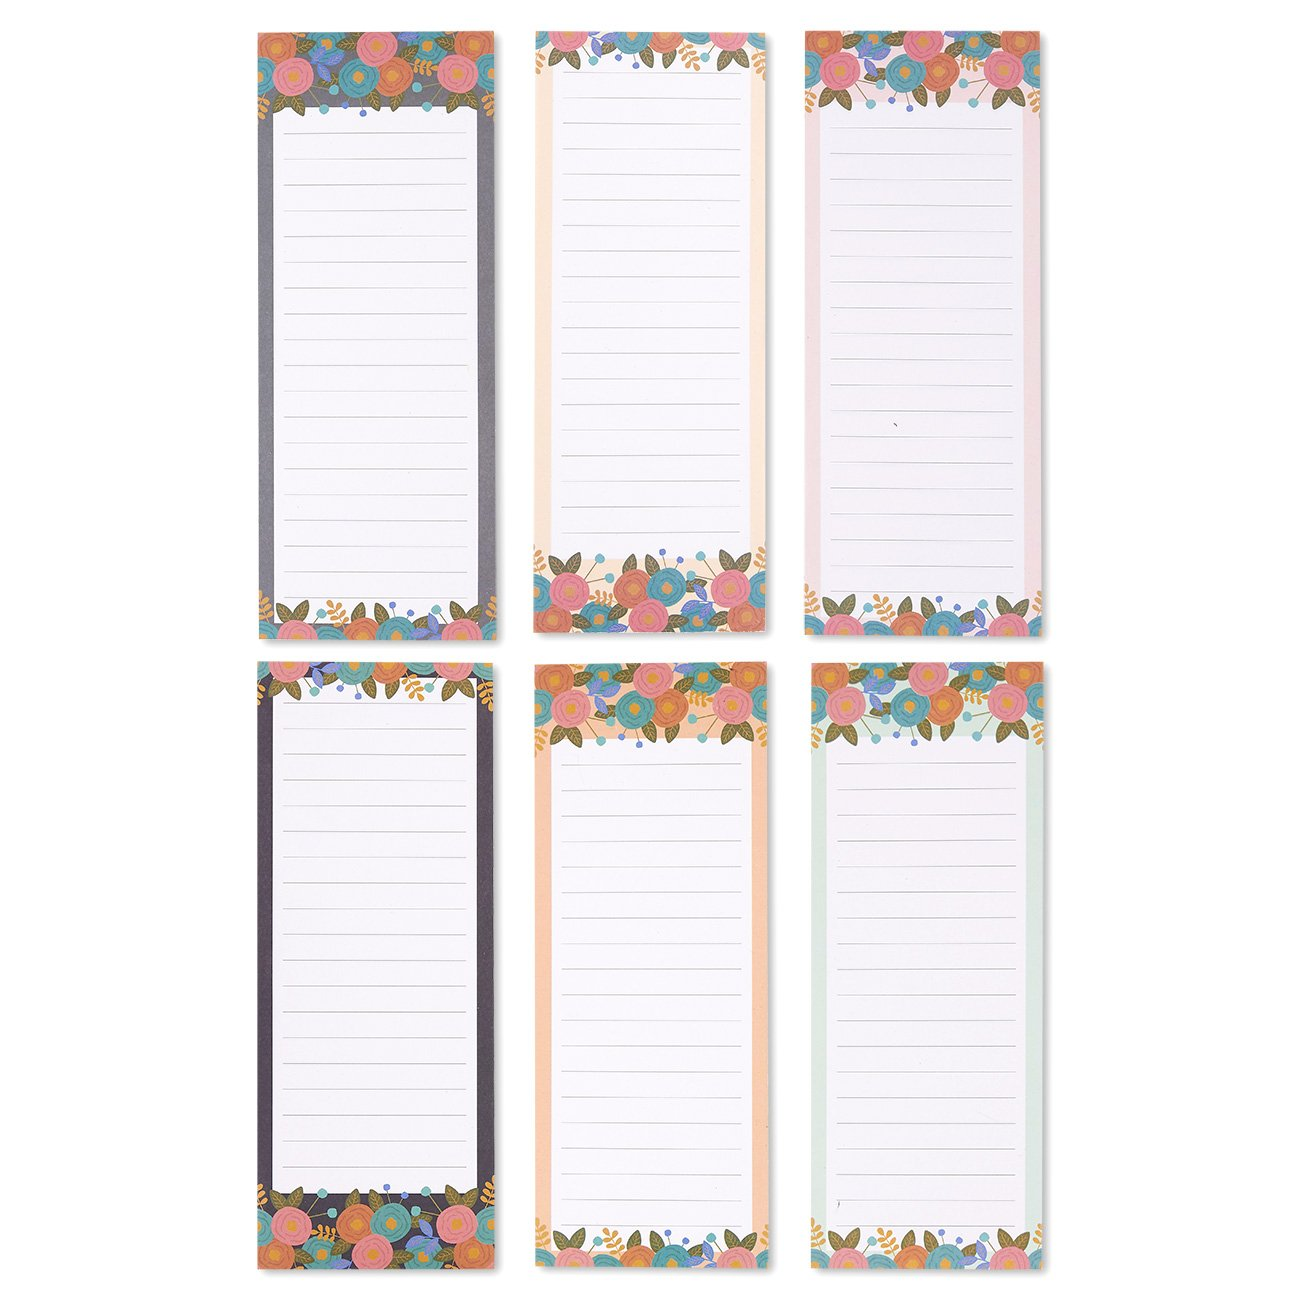 To-do-List Notepad - 6-Pack Magnetic Notepads, Grocery List Magnet Pad Stationery for To Do List, Modern Floral Designs, 60 Sheets Per Pad